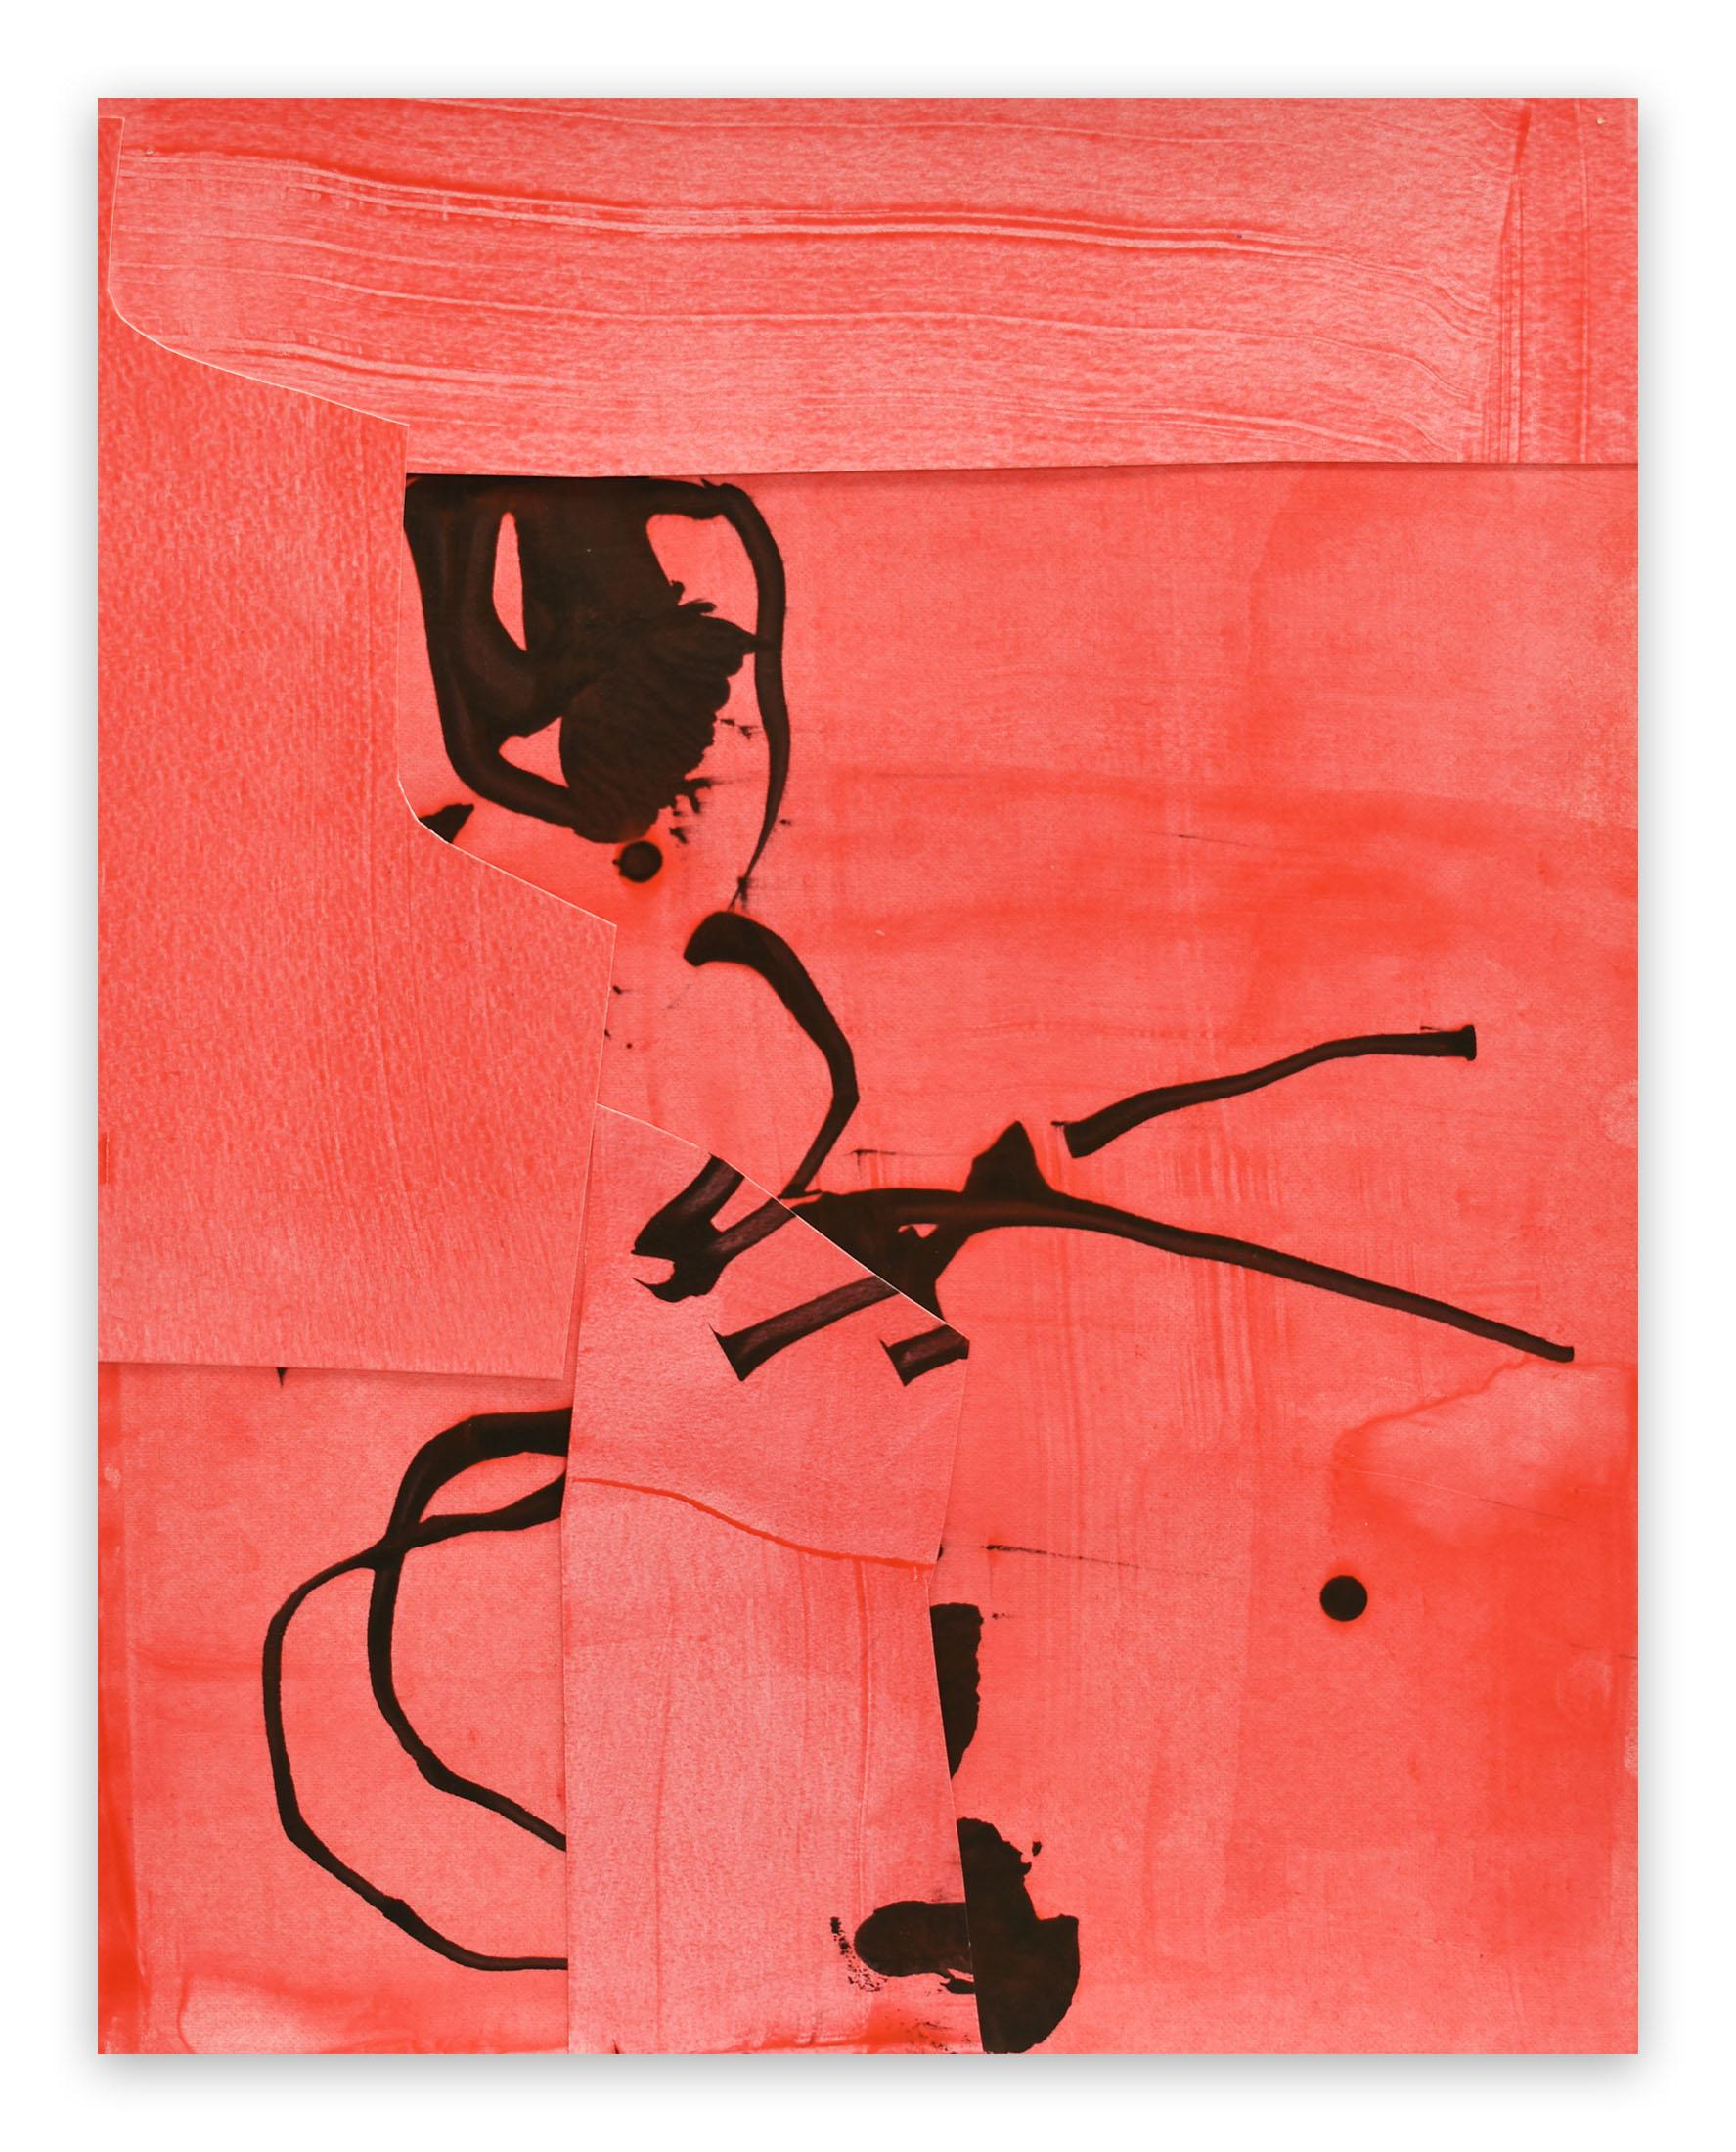 Frankly Scarlet 4 (Abstract painting)